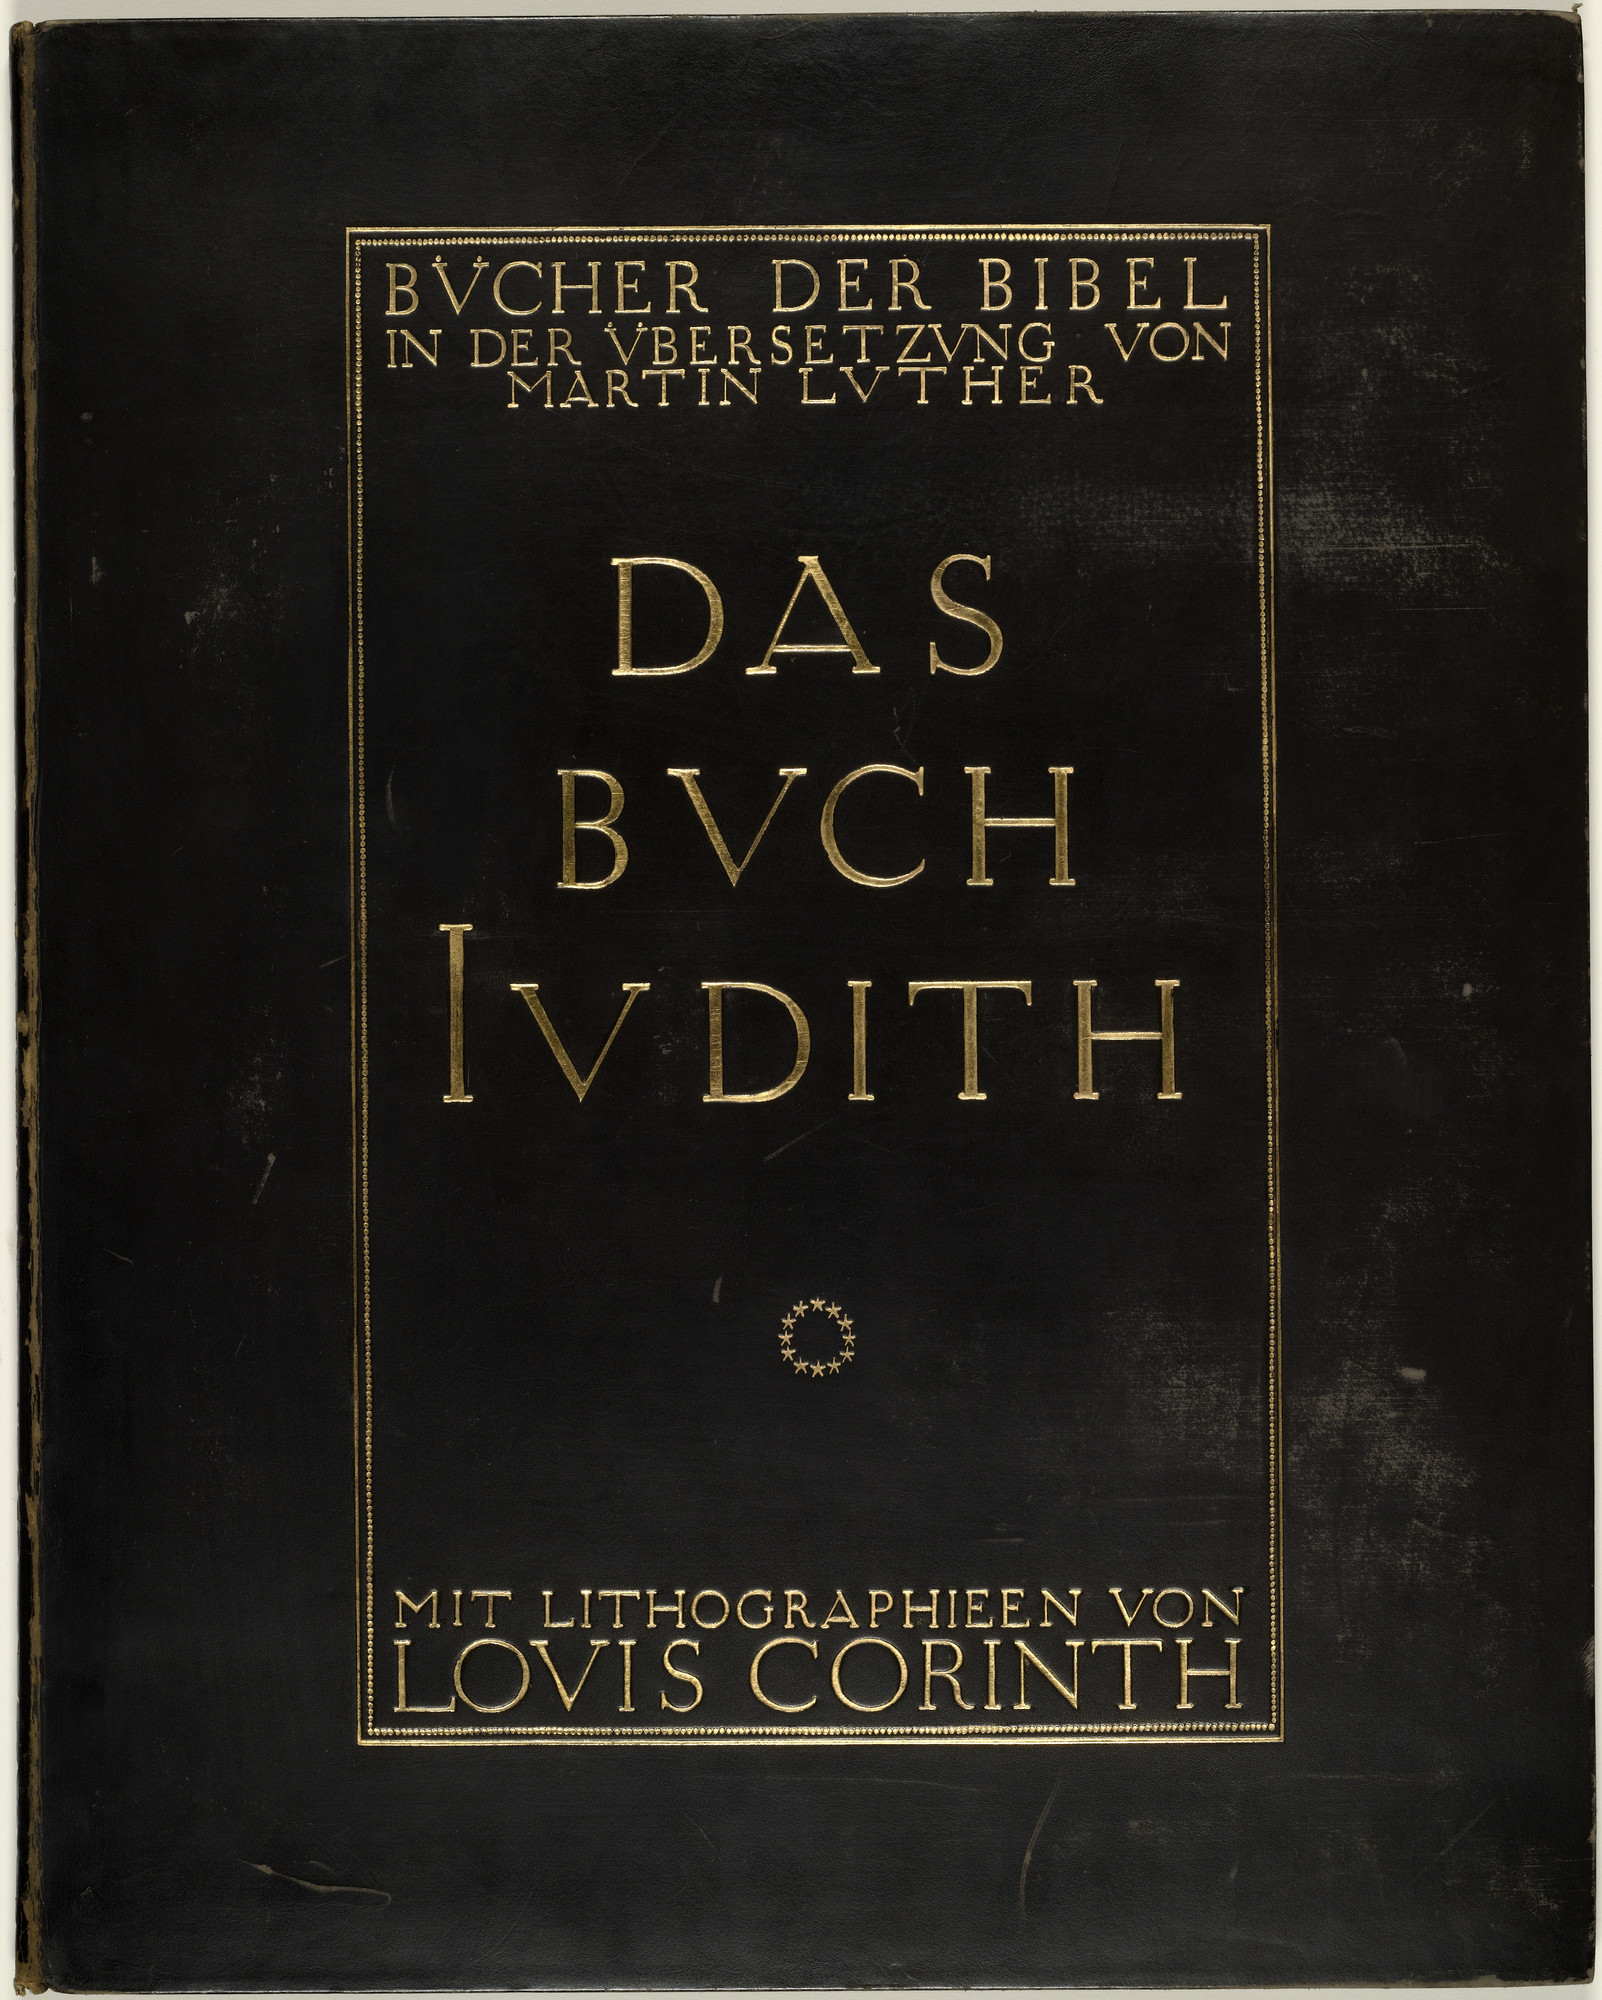 Lovis Corinth. Das Buch Judith (The Book of Judith). 1910 (prints executed 1909)